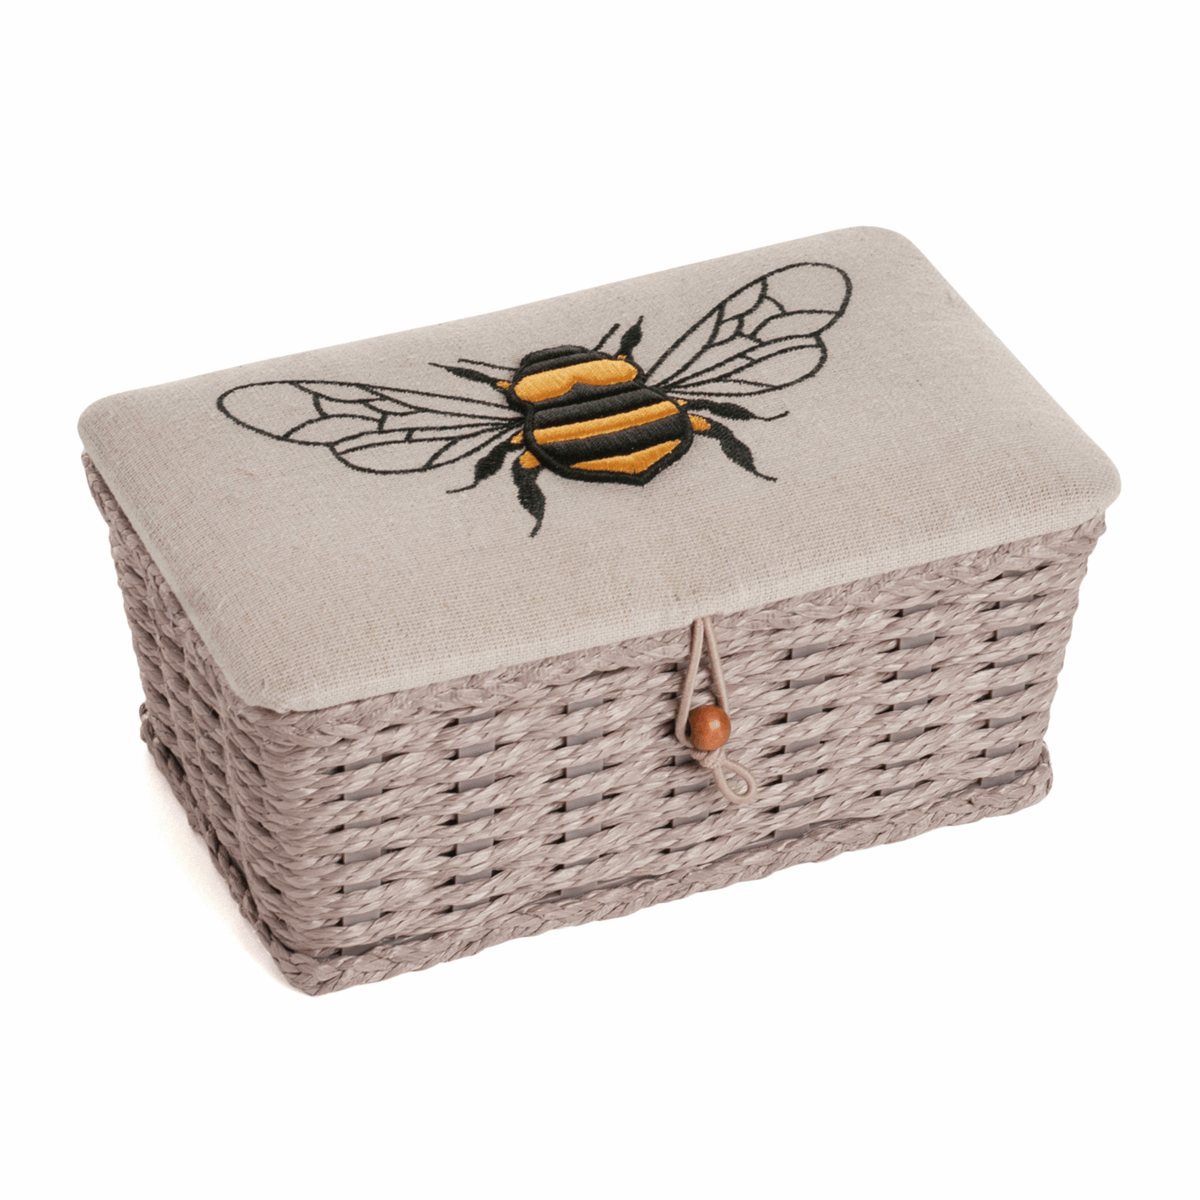 Bee Hive Linen Woven Sewing Box - Small